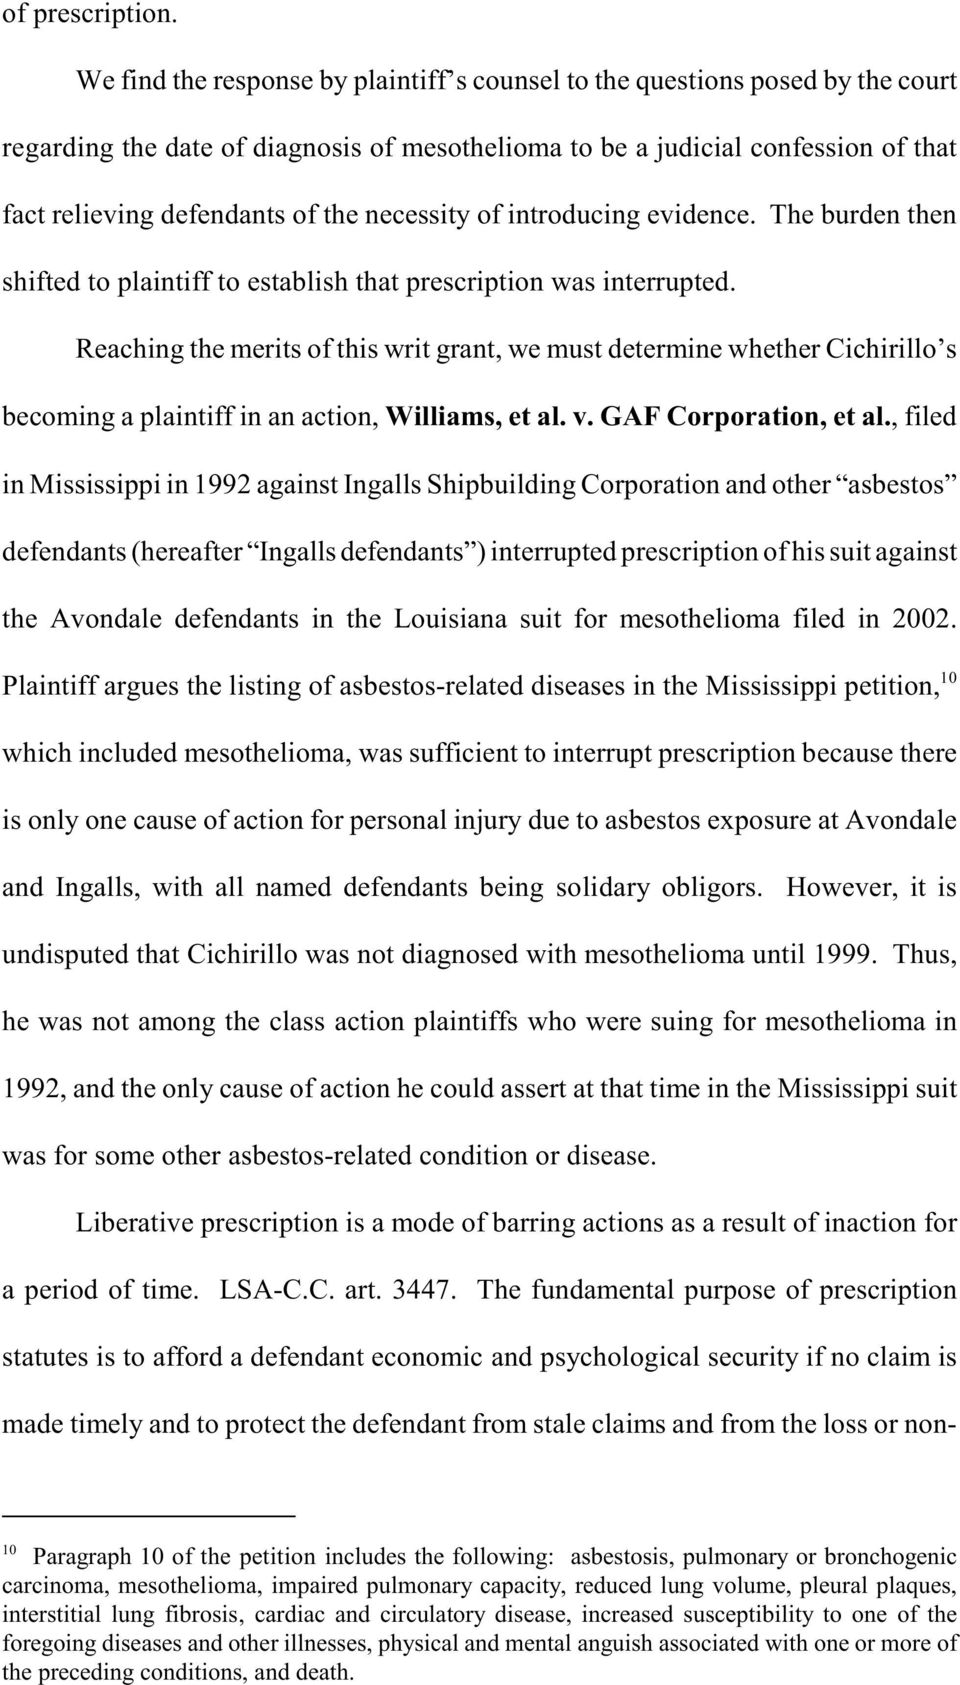 necessity of introducing evidence. The burden then shifted to plaintiff to establish that prescription was interrupted.